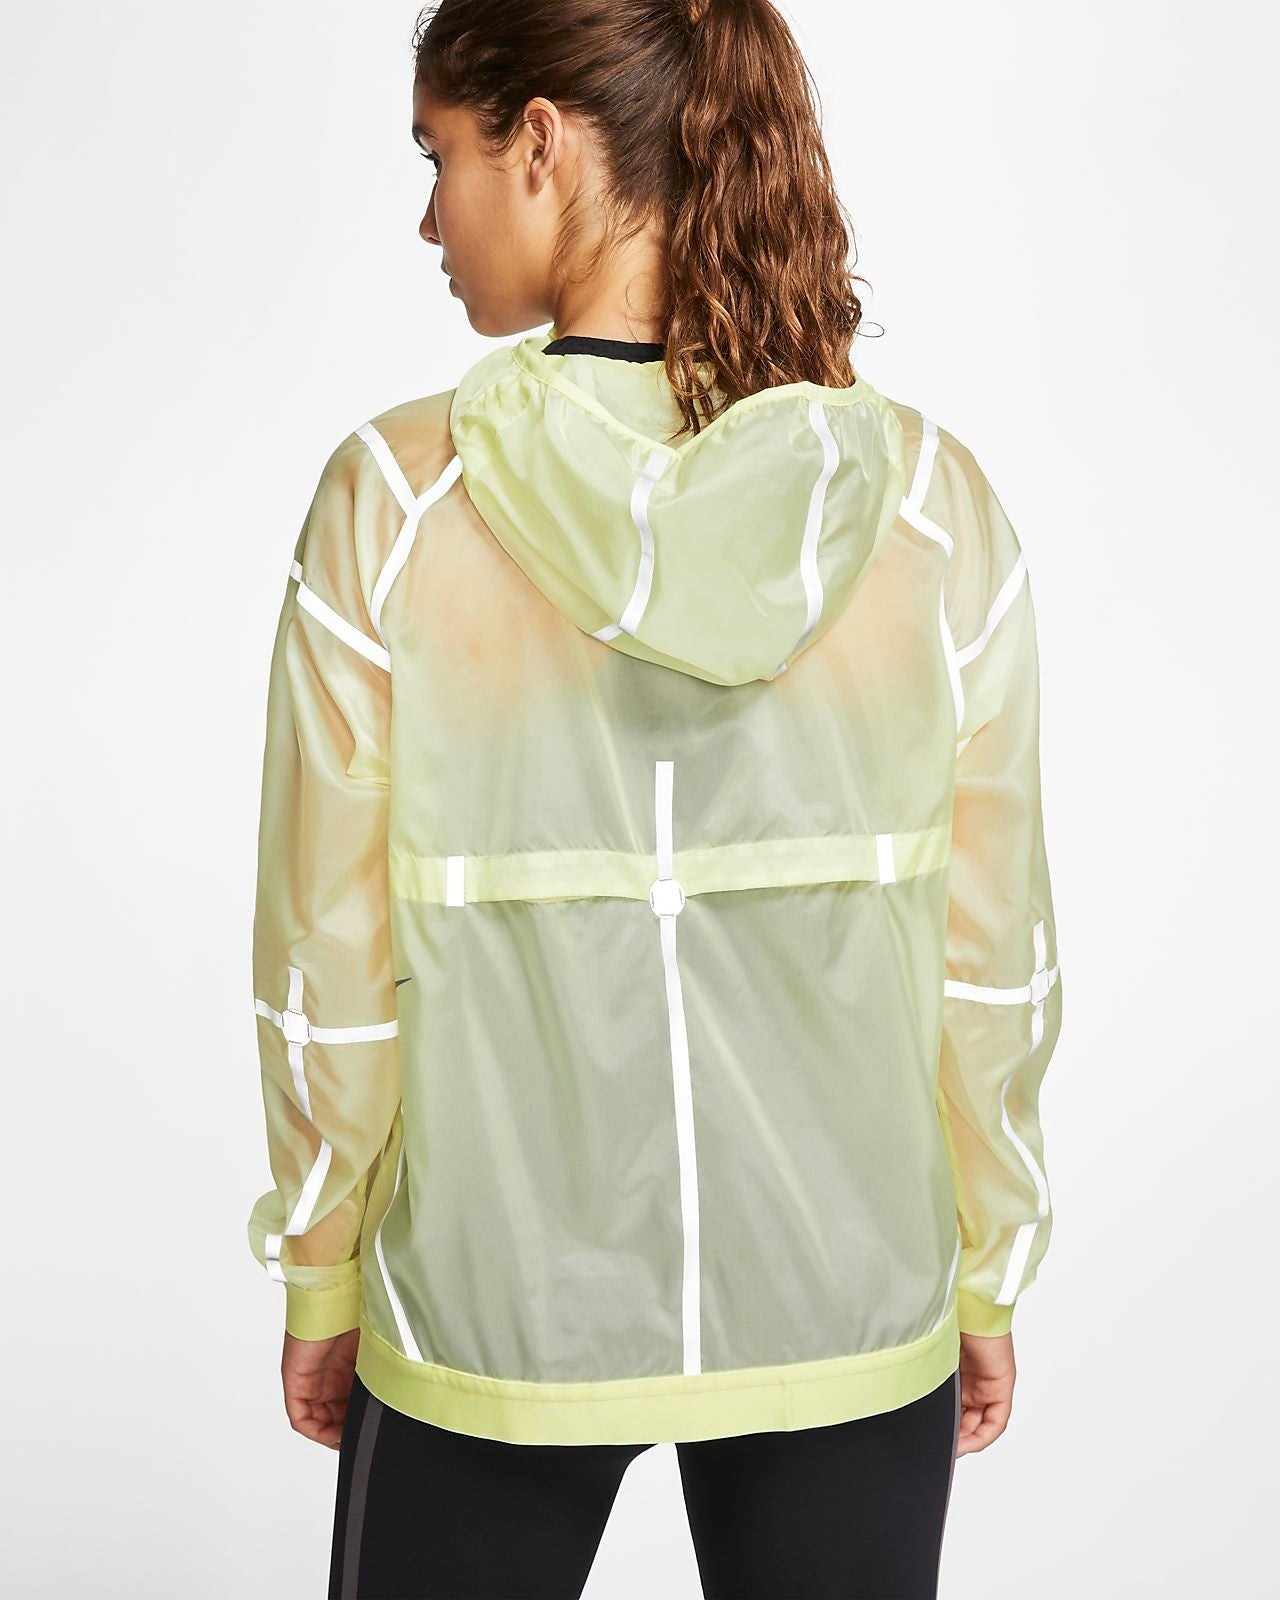 Women's NIKE City Ready Hooded Running Jacket.   BV3828-335